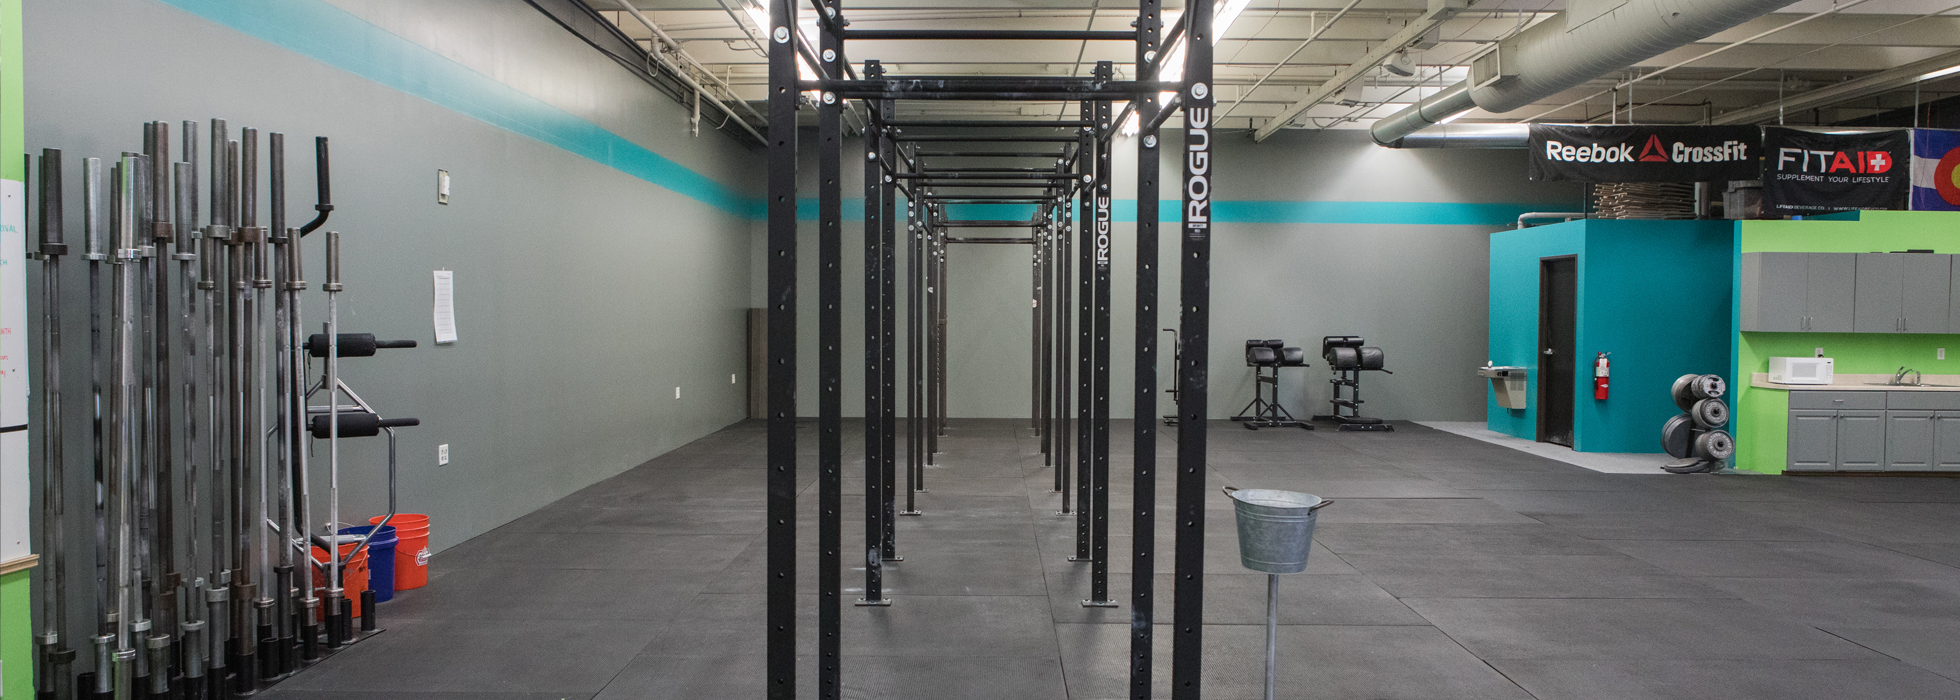 Why CrossFit Longmont Is Ranked One Of The Best Gyms In Longmont CO, Why CrossFit Longmont Is Ranked One Of The Best Gyms near Loveland CO, Why CrossFit Longmont Is Ranked One Of The Best Gyms near Boulder CO